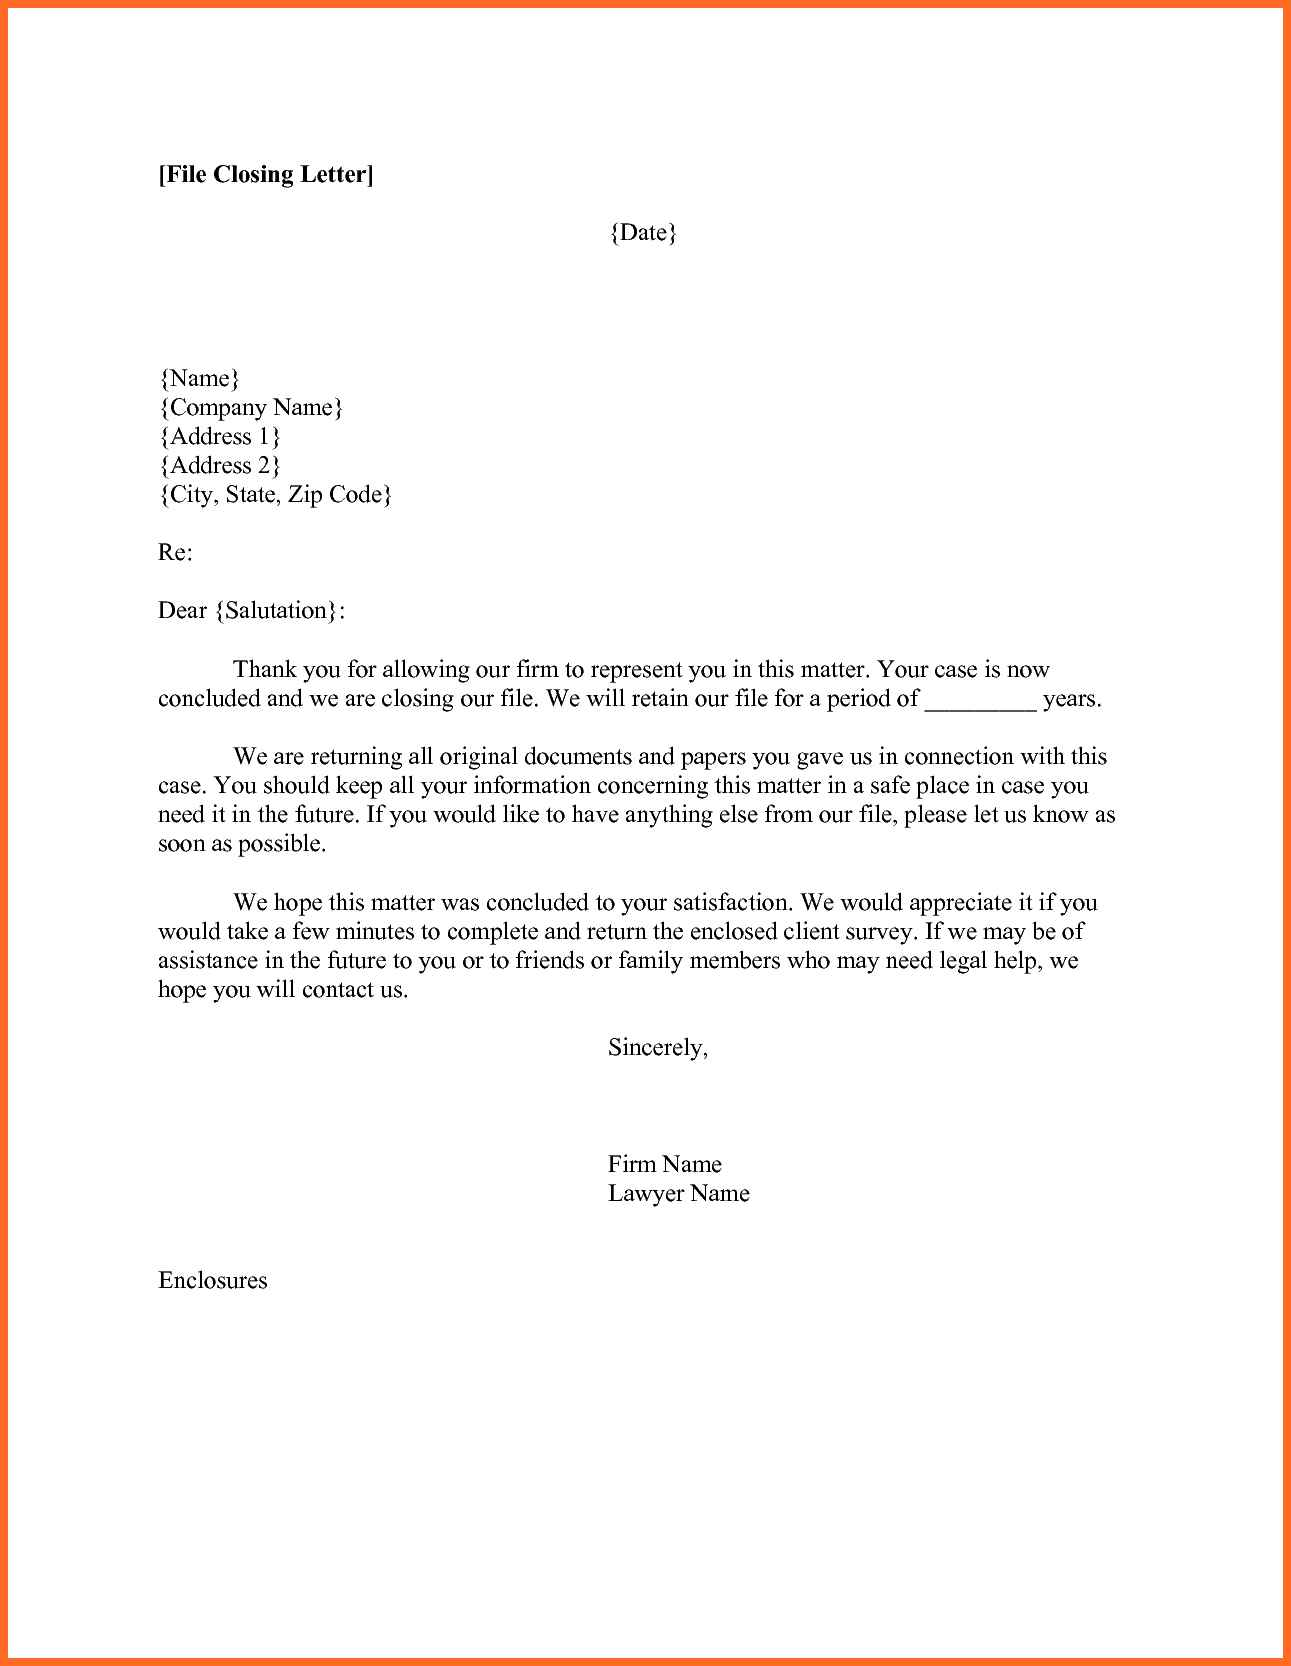 Business Letter Closing Letter Closing Examples Business Letter